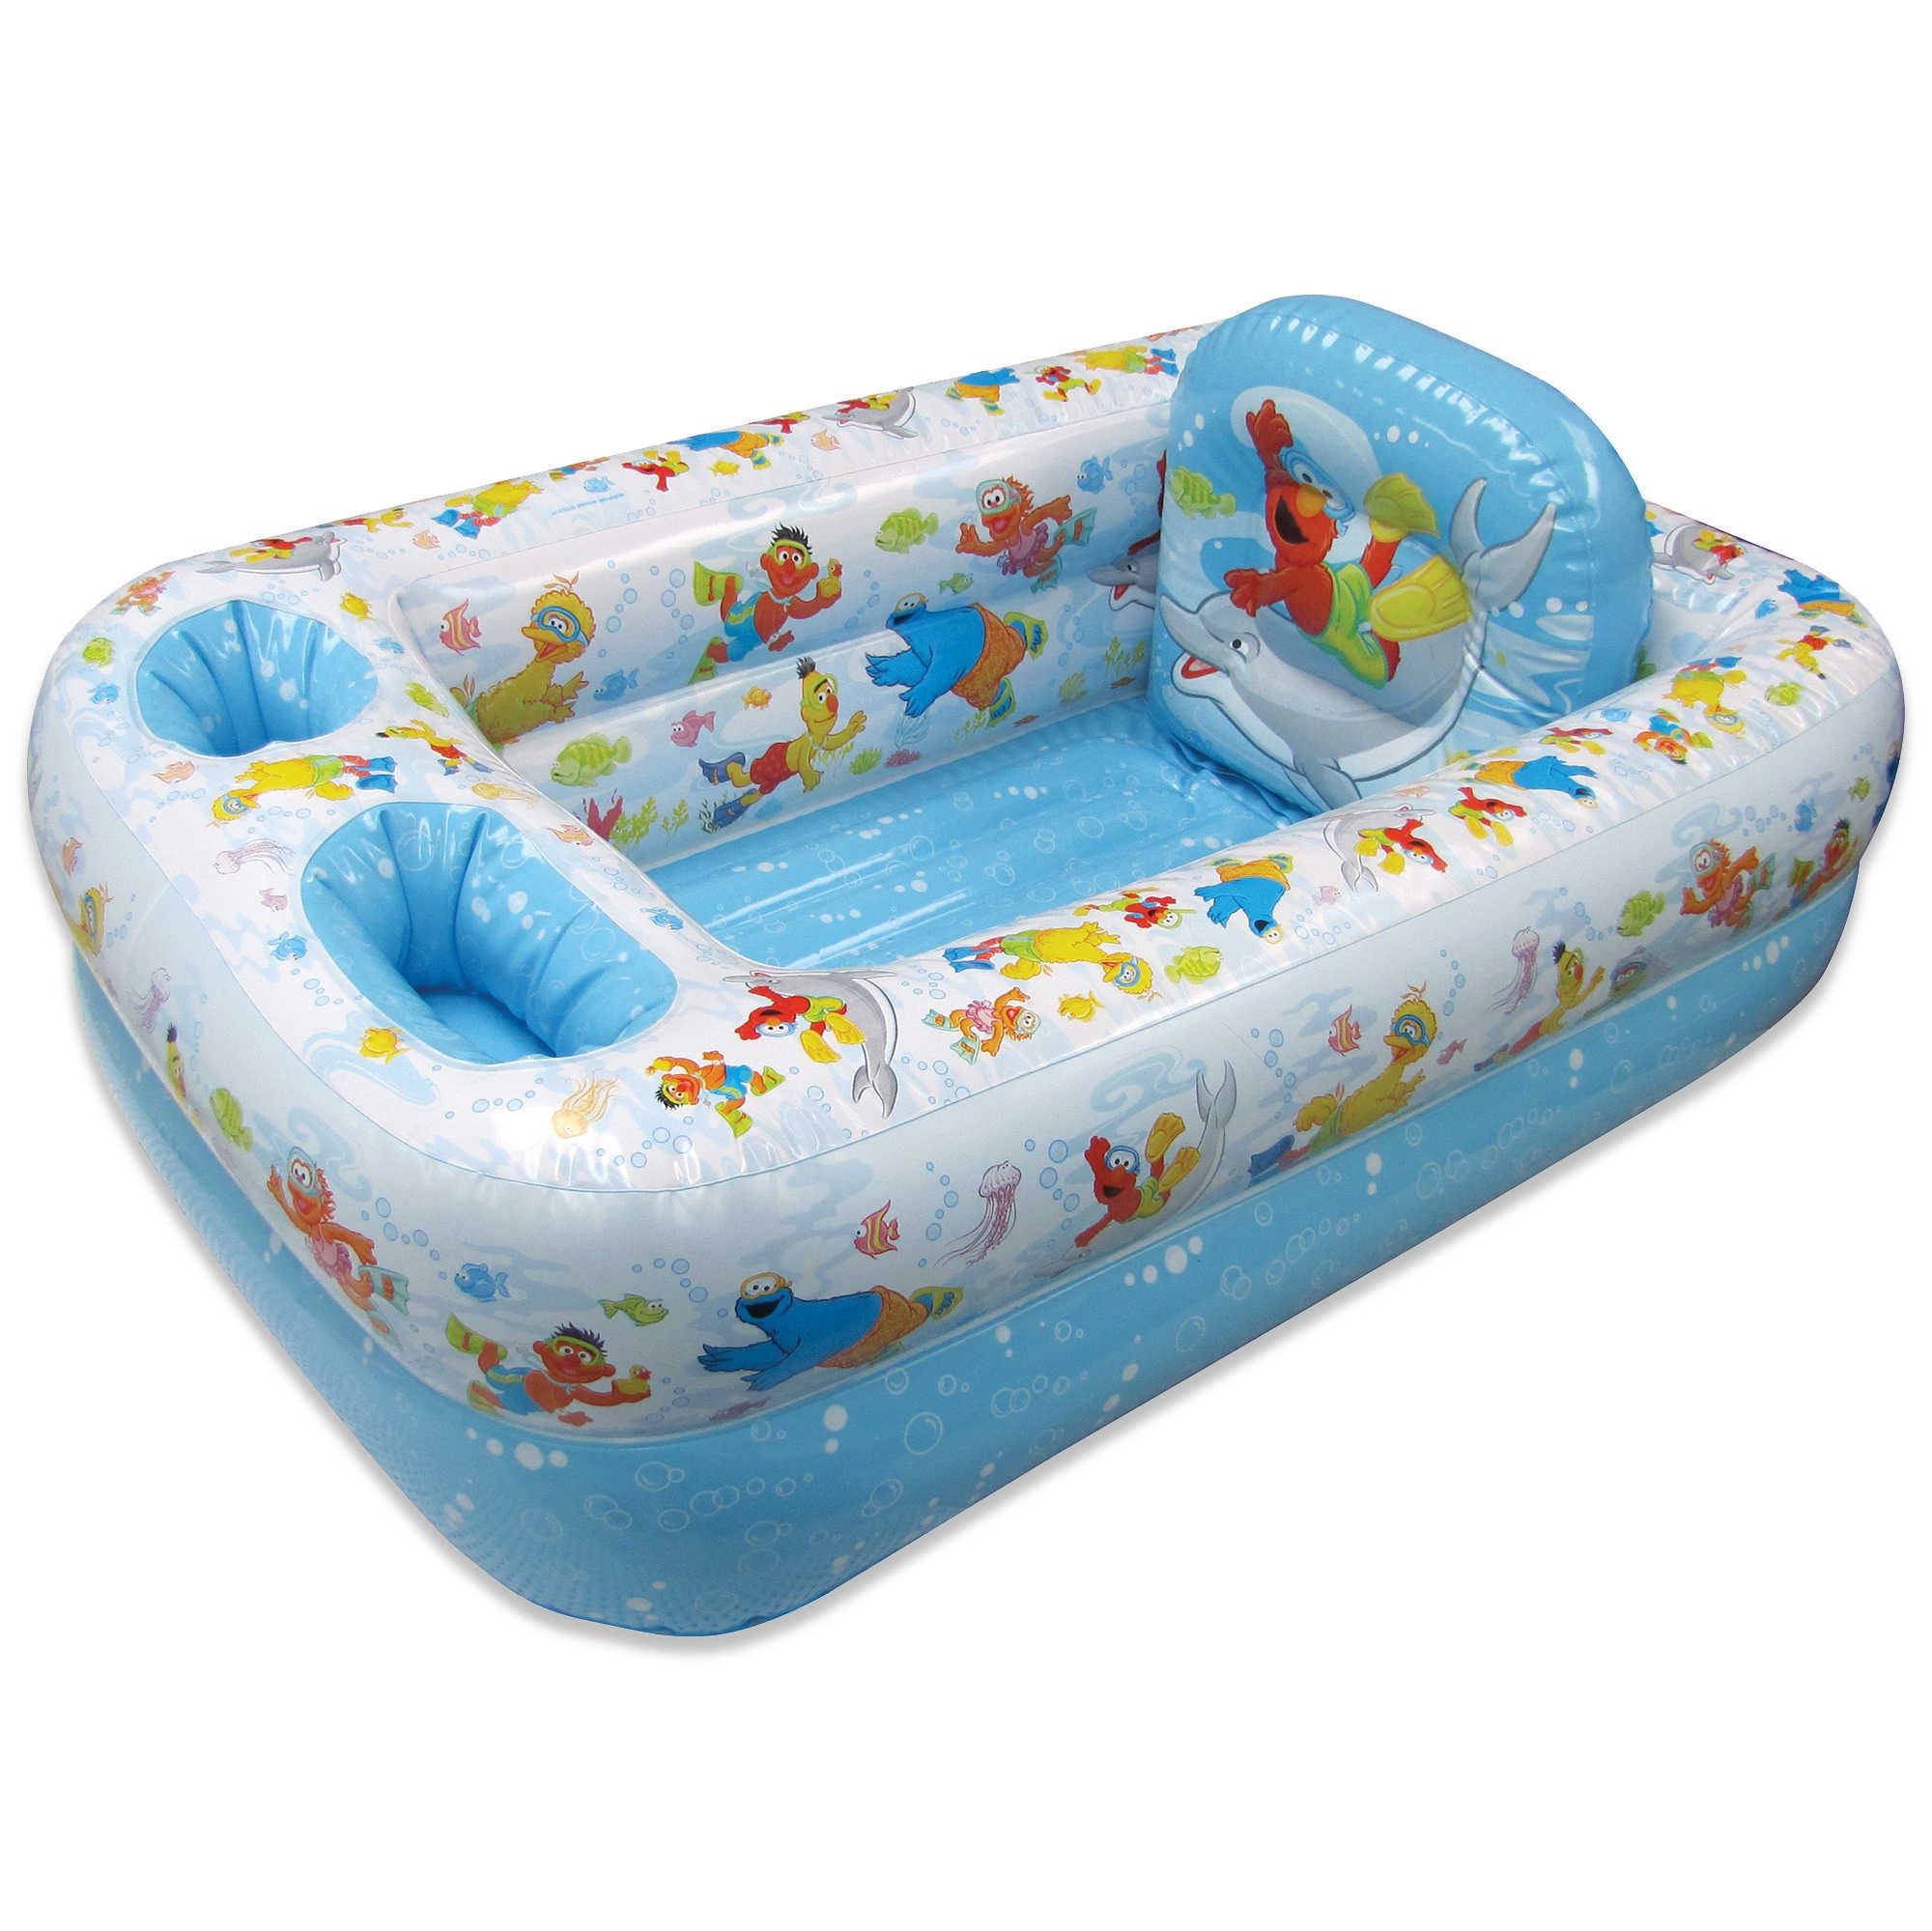 Disney Inflatable Bathtub, Winnie the Pooh - Walmart.com